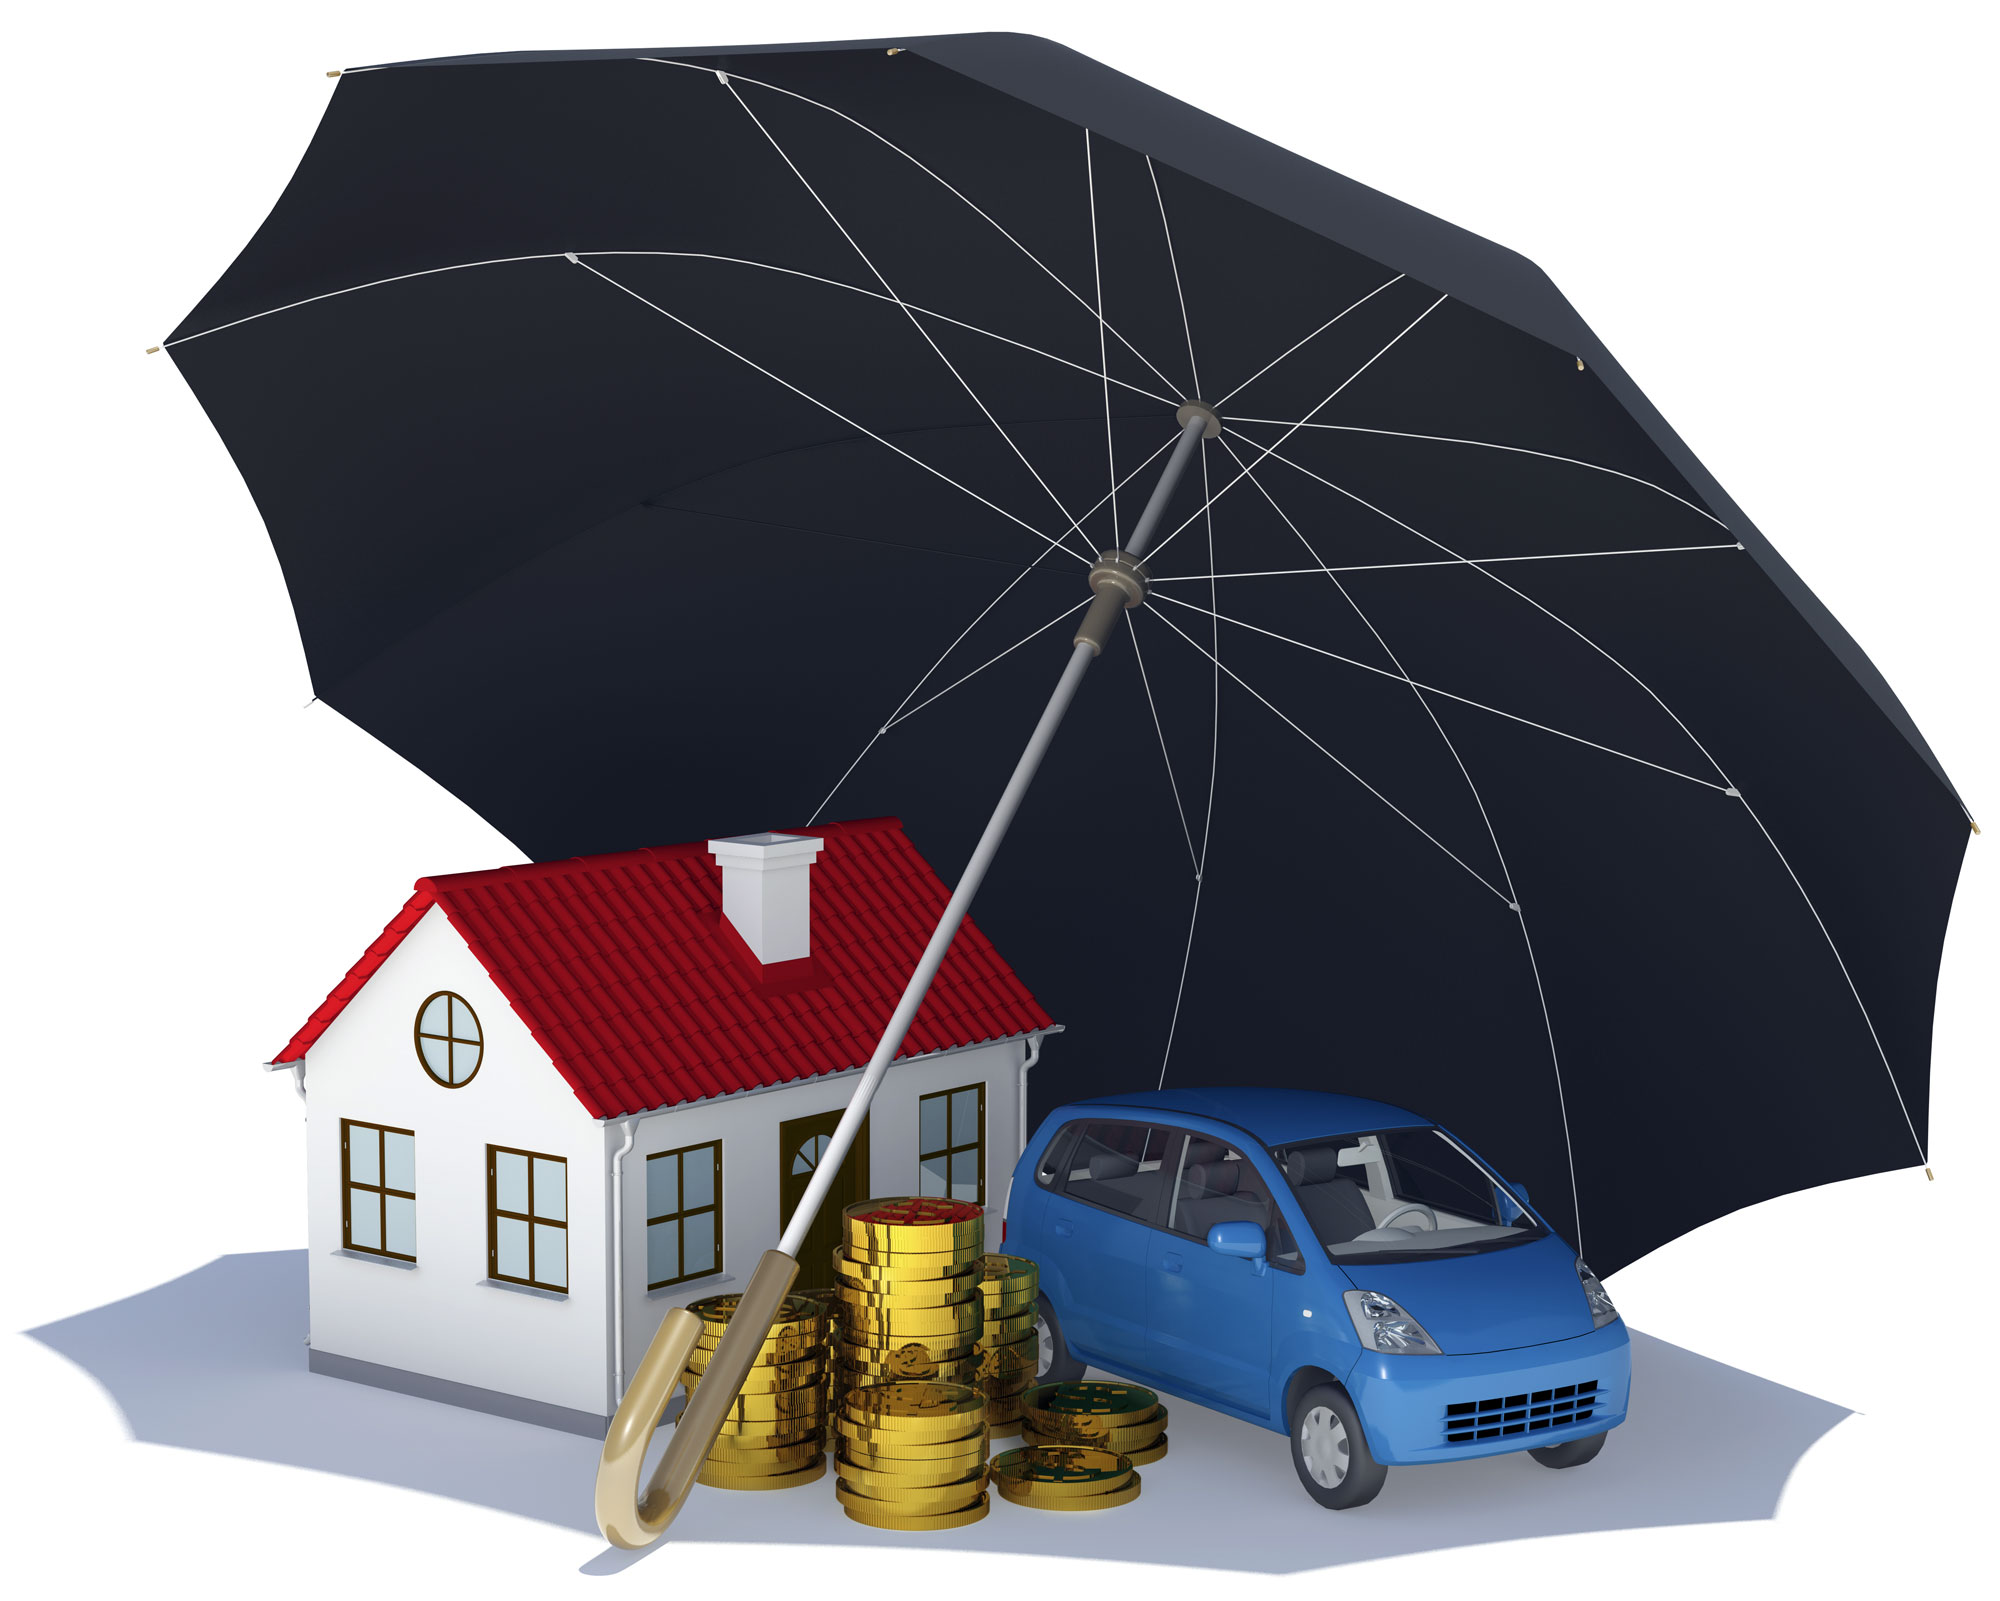 Have You Been Considering An Umbrella Policy